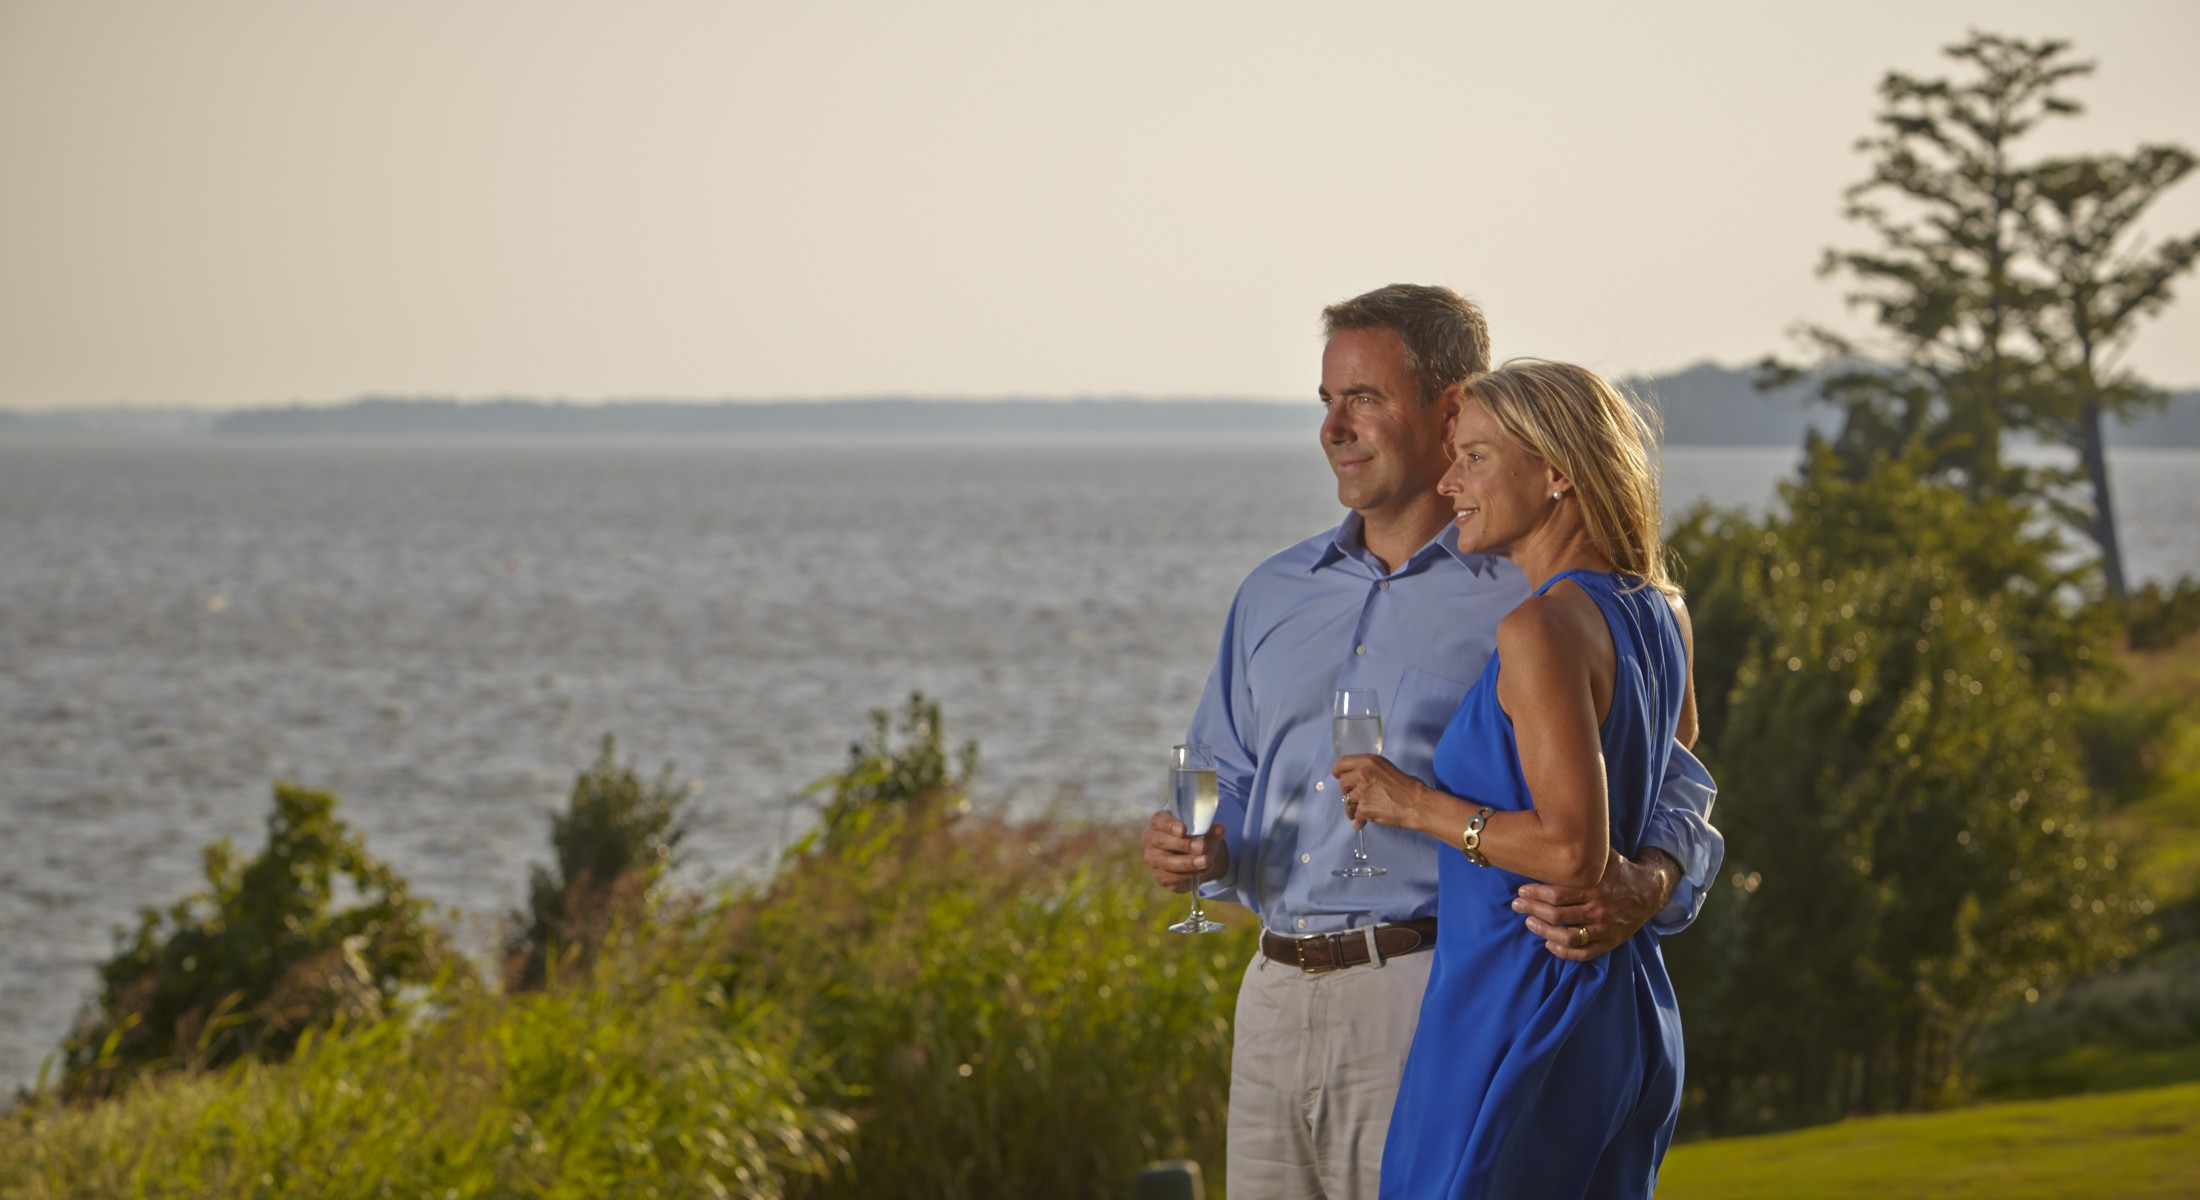 Couple Holding Wine Looking at James River